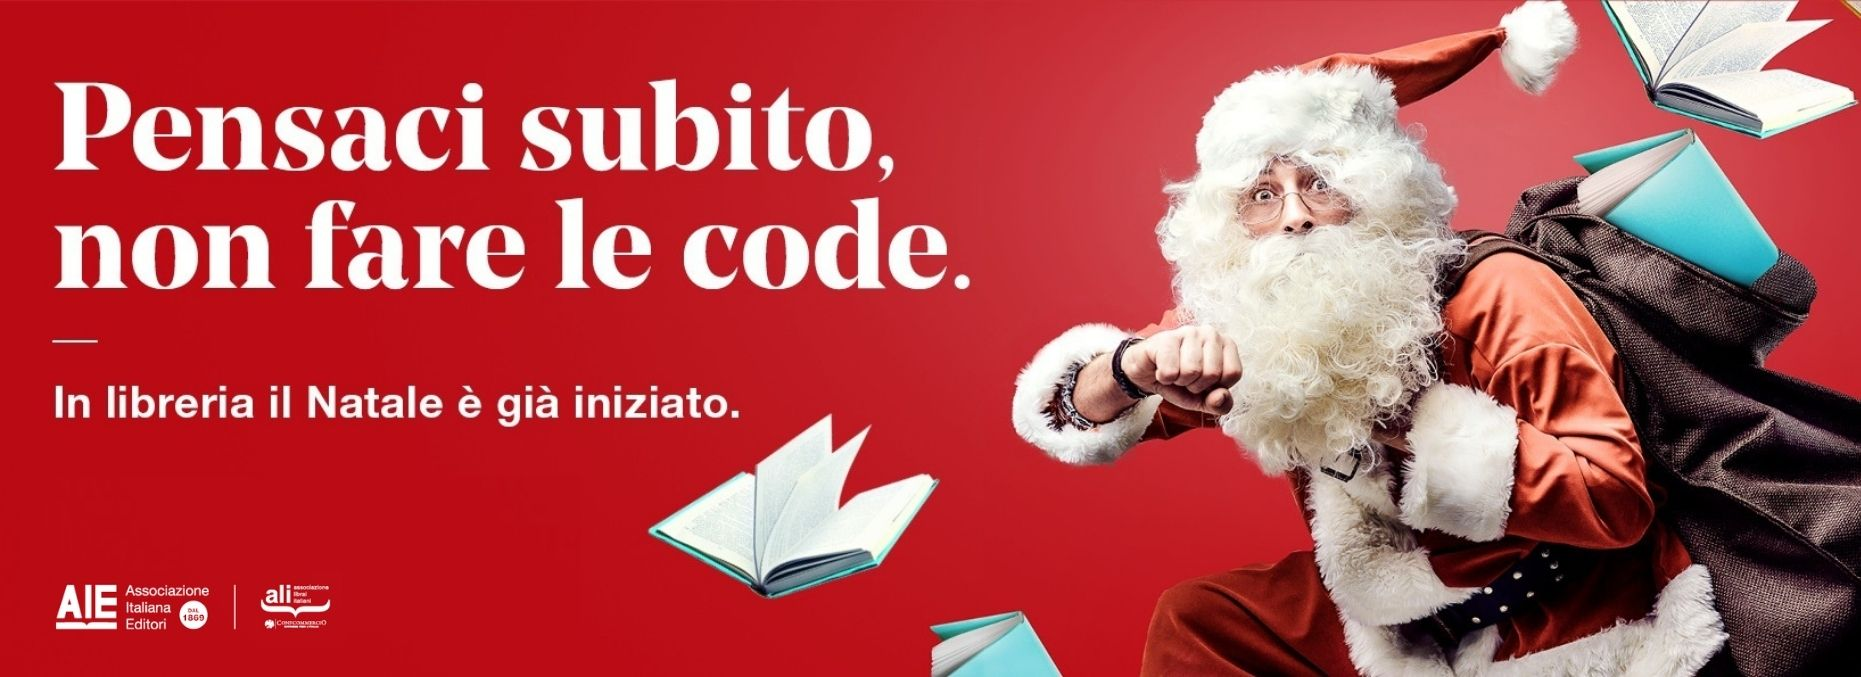 Campagna Natale 2020